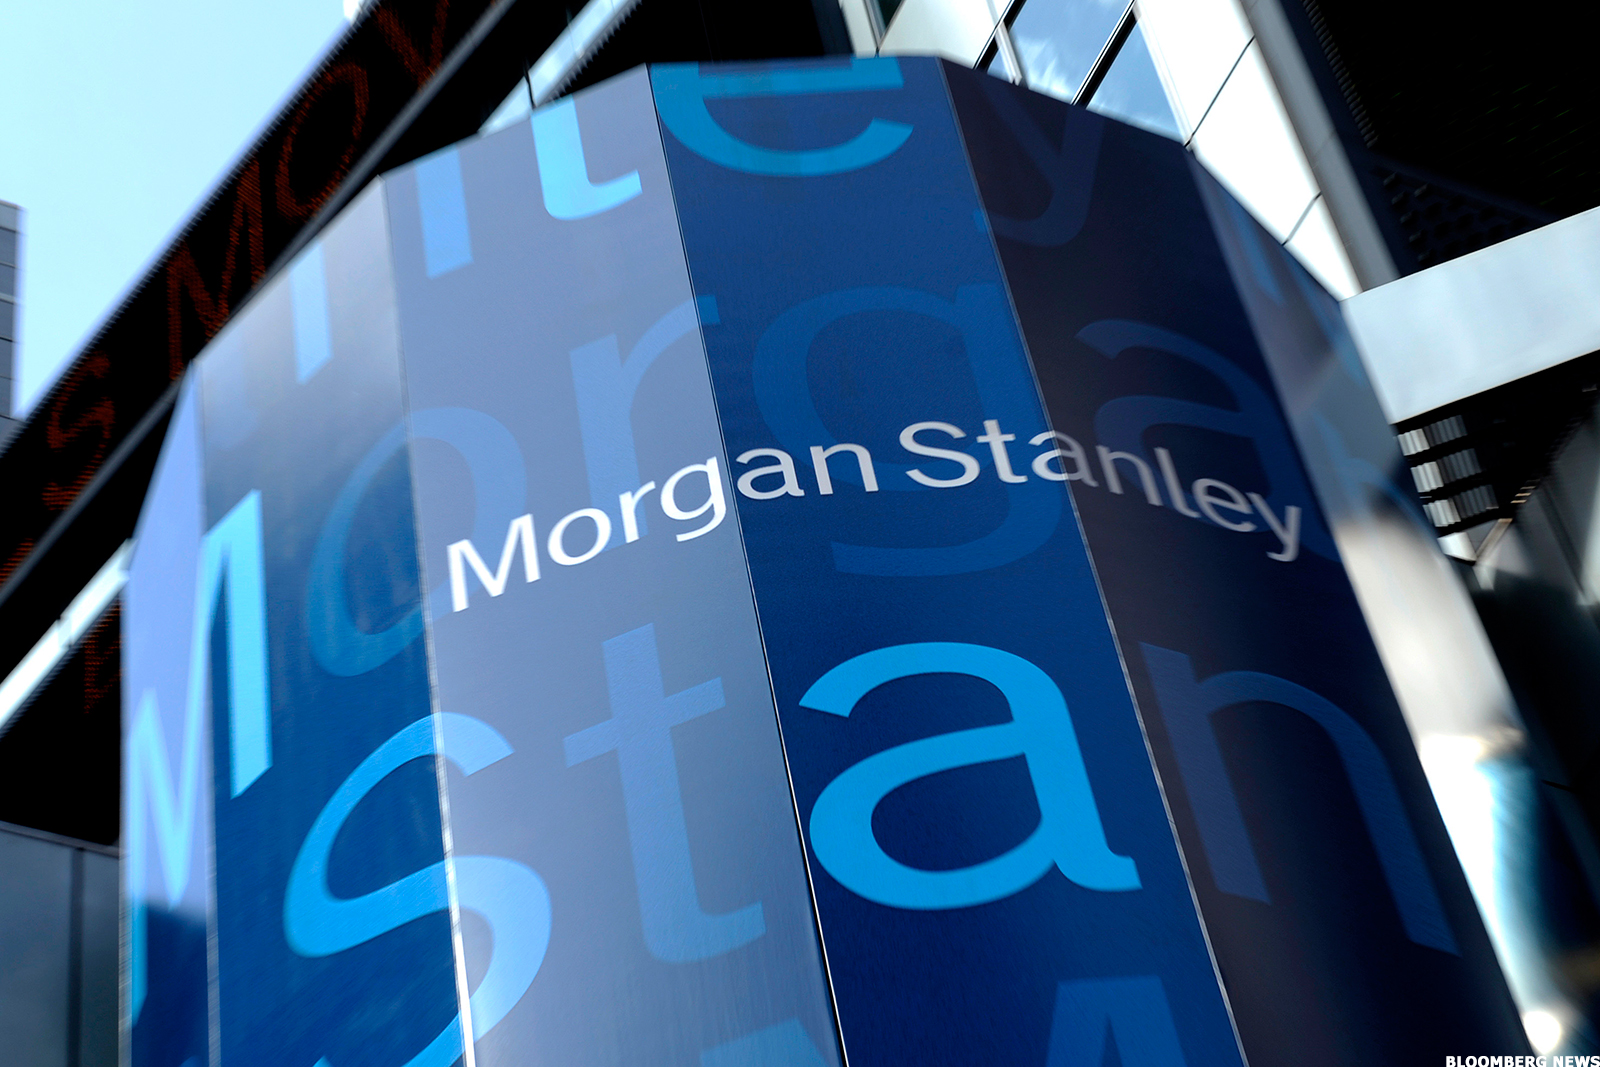 Morgan Stanley S Ms 56 Dive In Bond Trading Is Worst